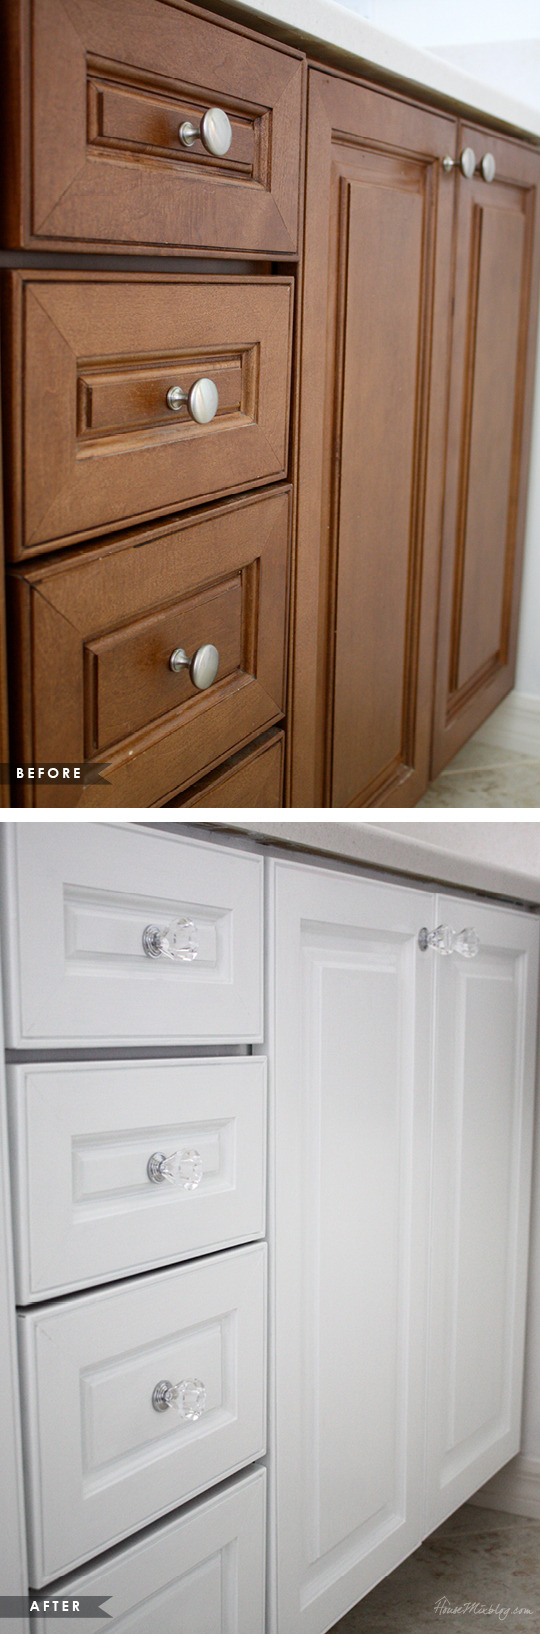 How to paint cabinets without removing doors using one can before and after